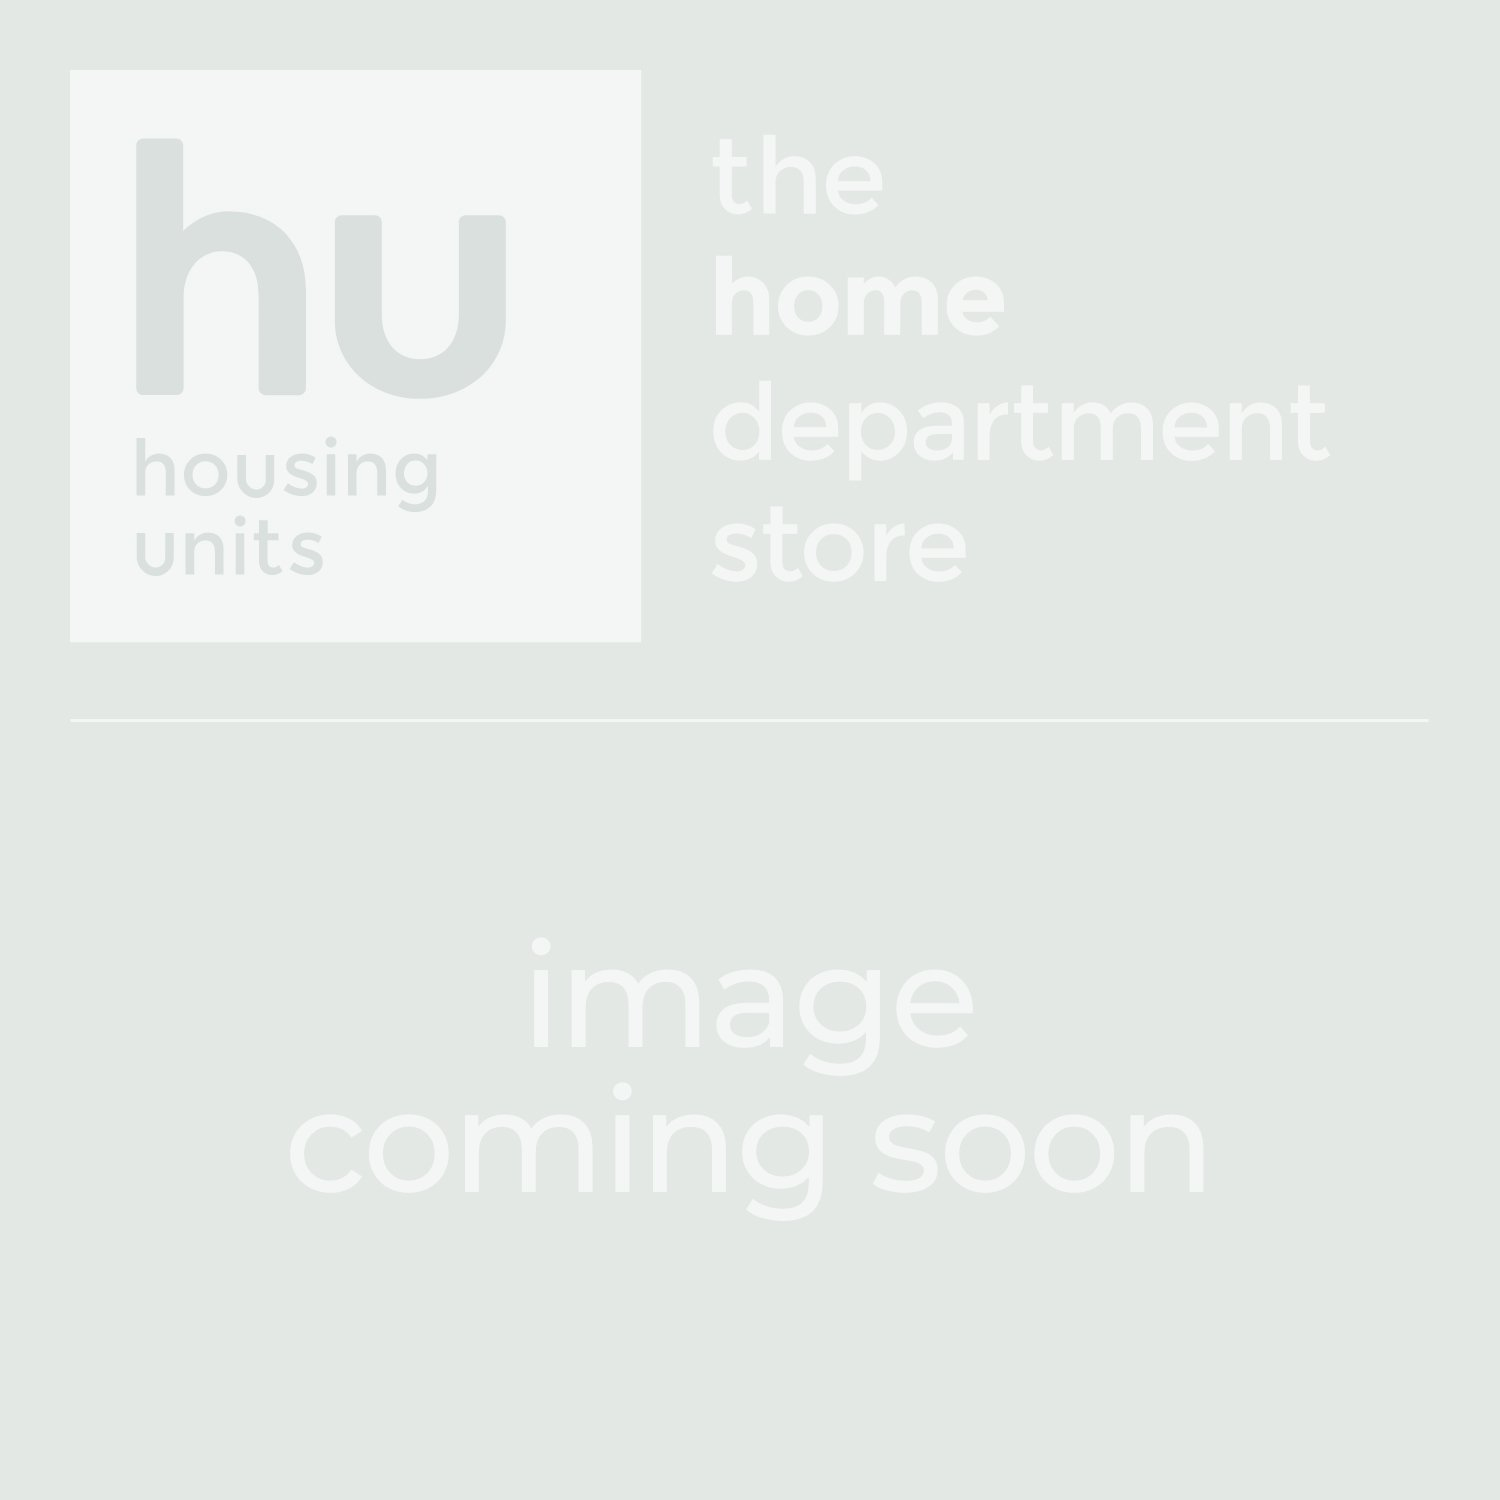 Celestial Round 239 x 239cm Ivory Teal Blue Rug | Housing Units